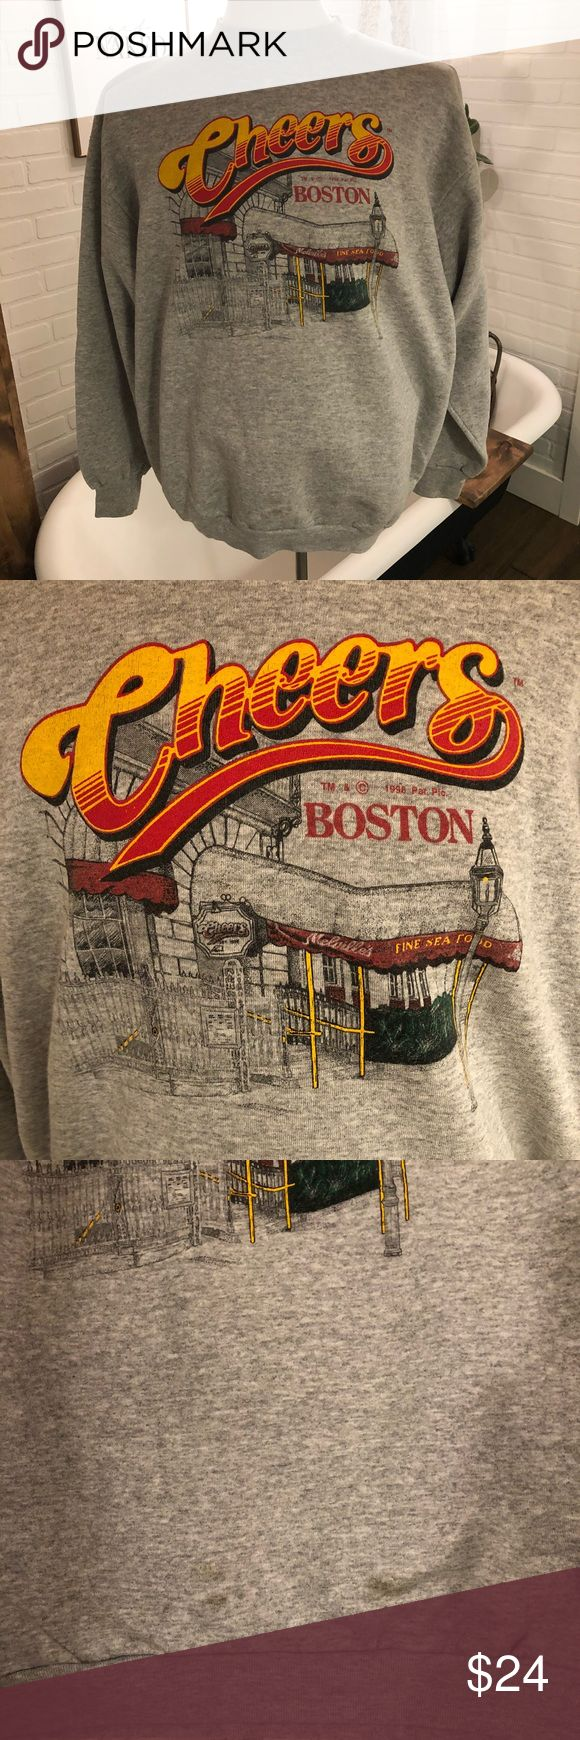 "Vintage Cheers TV Show Boston Sweatshirt Great vintage sweatshirt! Only flaw, small stain at bottom-I included pic. Size XL Measurements: Pit to pit-25"" Collar to bottom-28"" Shirts Sweatshirts & Hoodies"